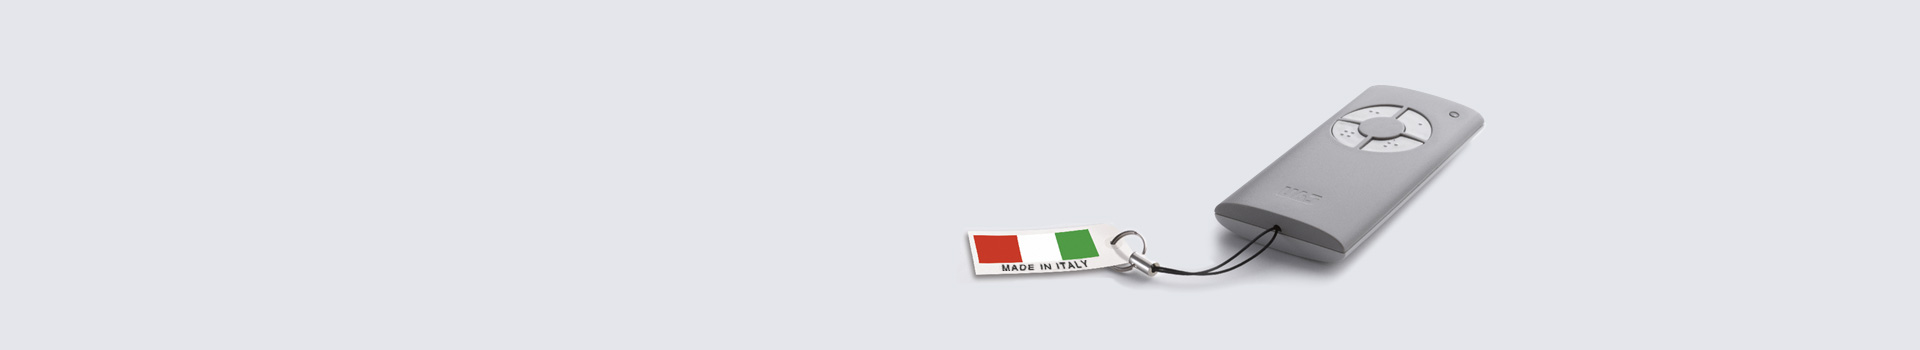 Made-in-Italy-OK